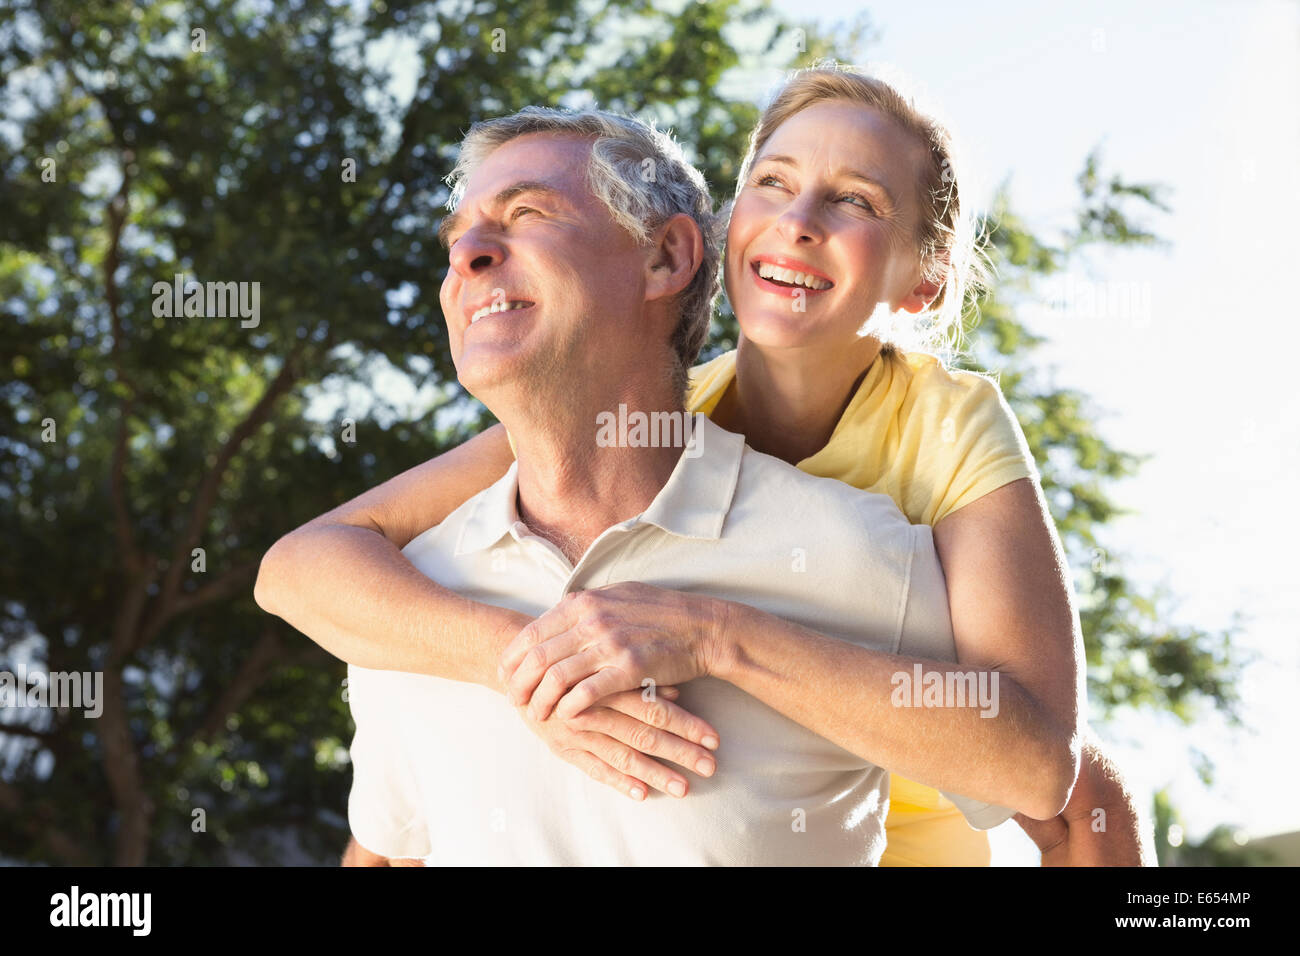 Happy senior man giving his partner a piggy back - Stock Image